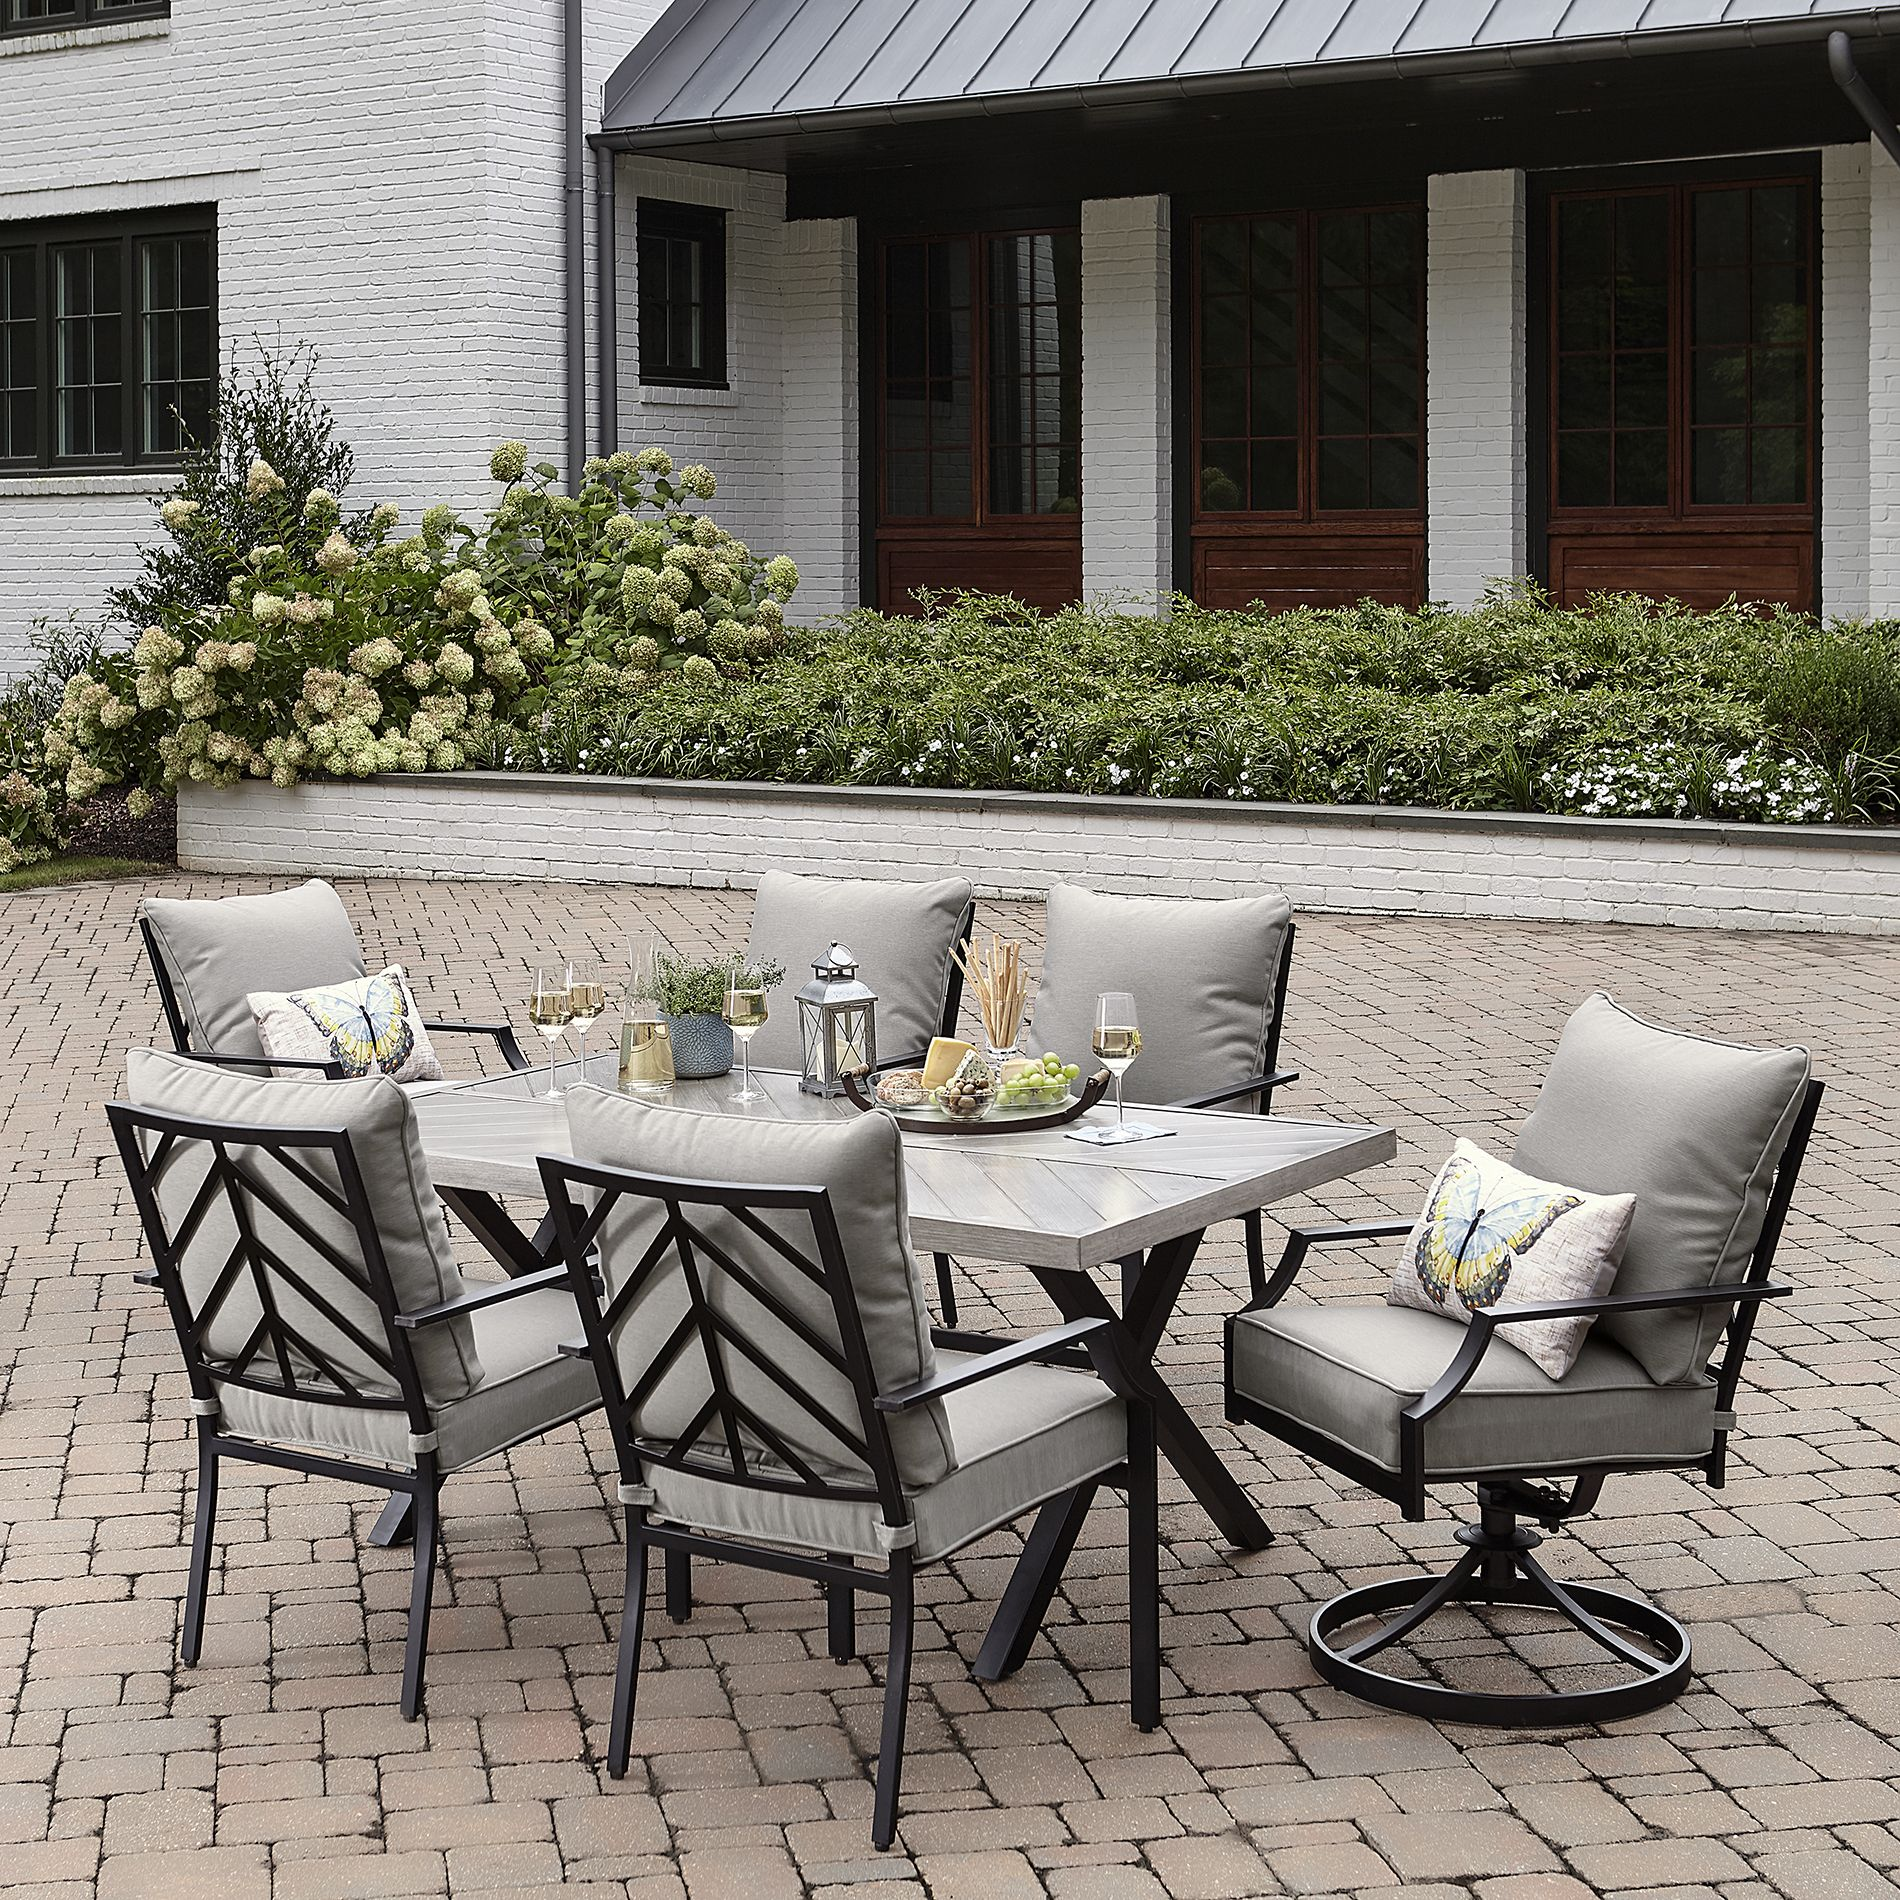 Outdoor Sutton Rowe Silver Springs 7pc Dining Set Gray In 2020 Patio Furniture Dining Set Gray Patio Furniture Nyc Furniture